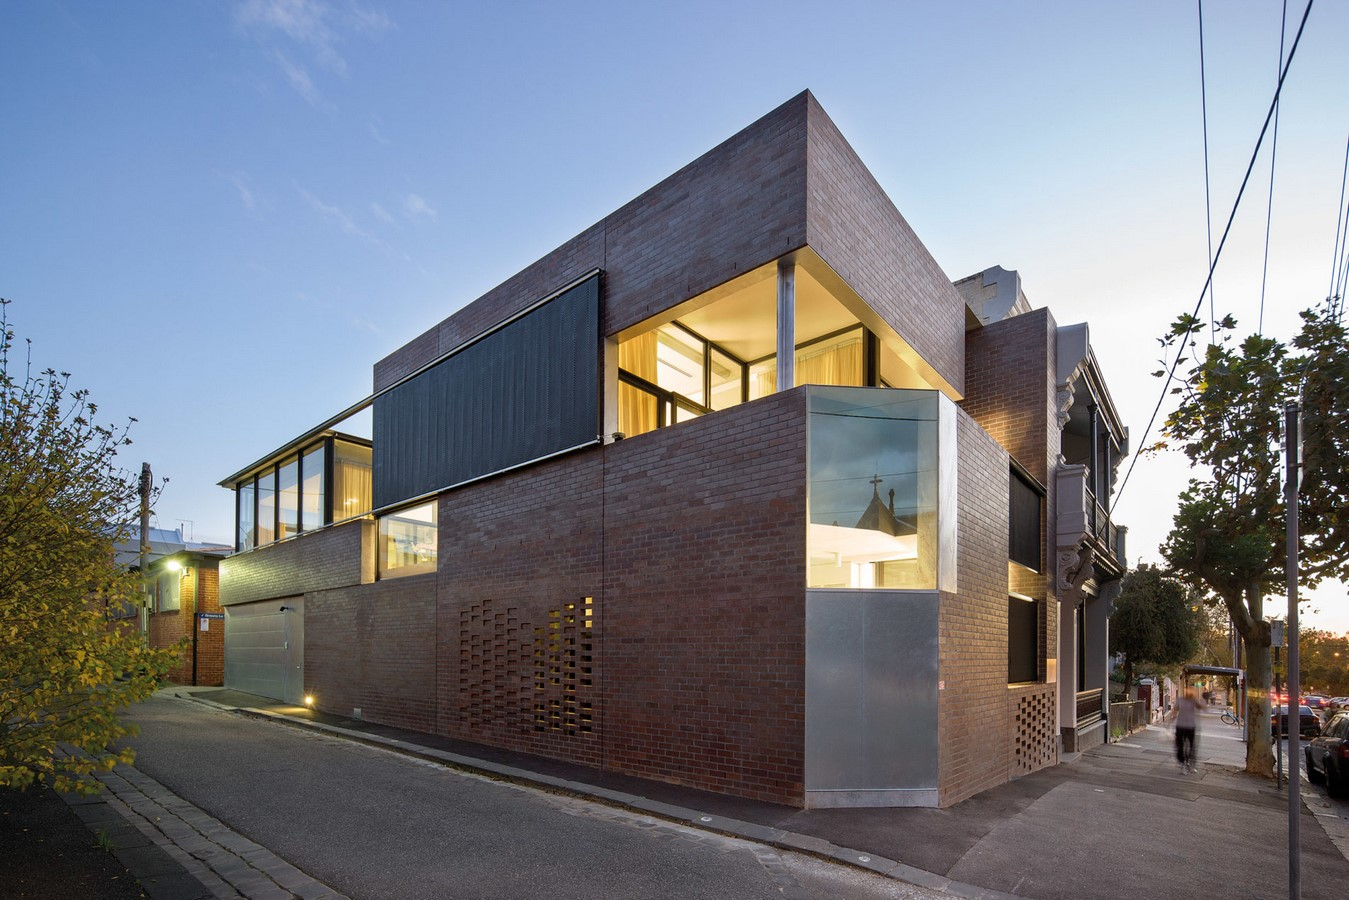 Queensberry Street House by Robert Simeoni Architects - Sheet1